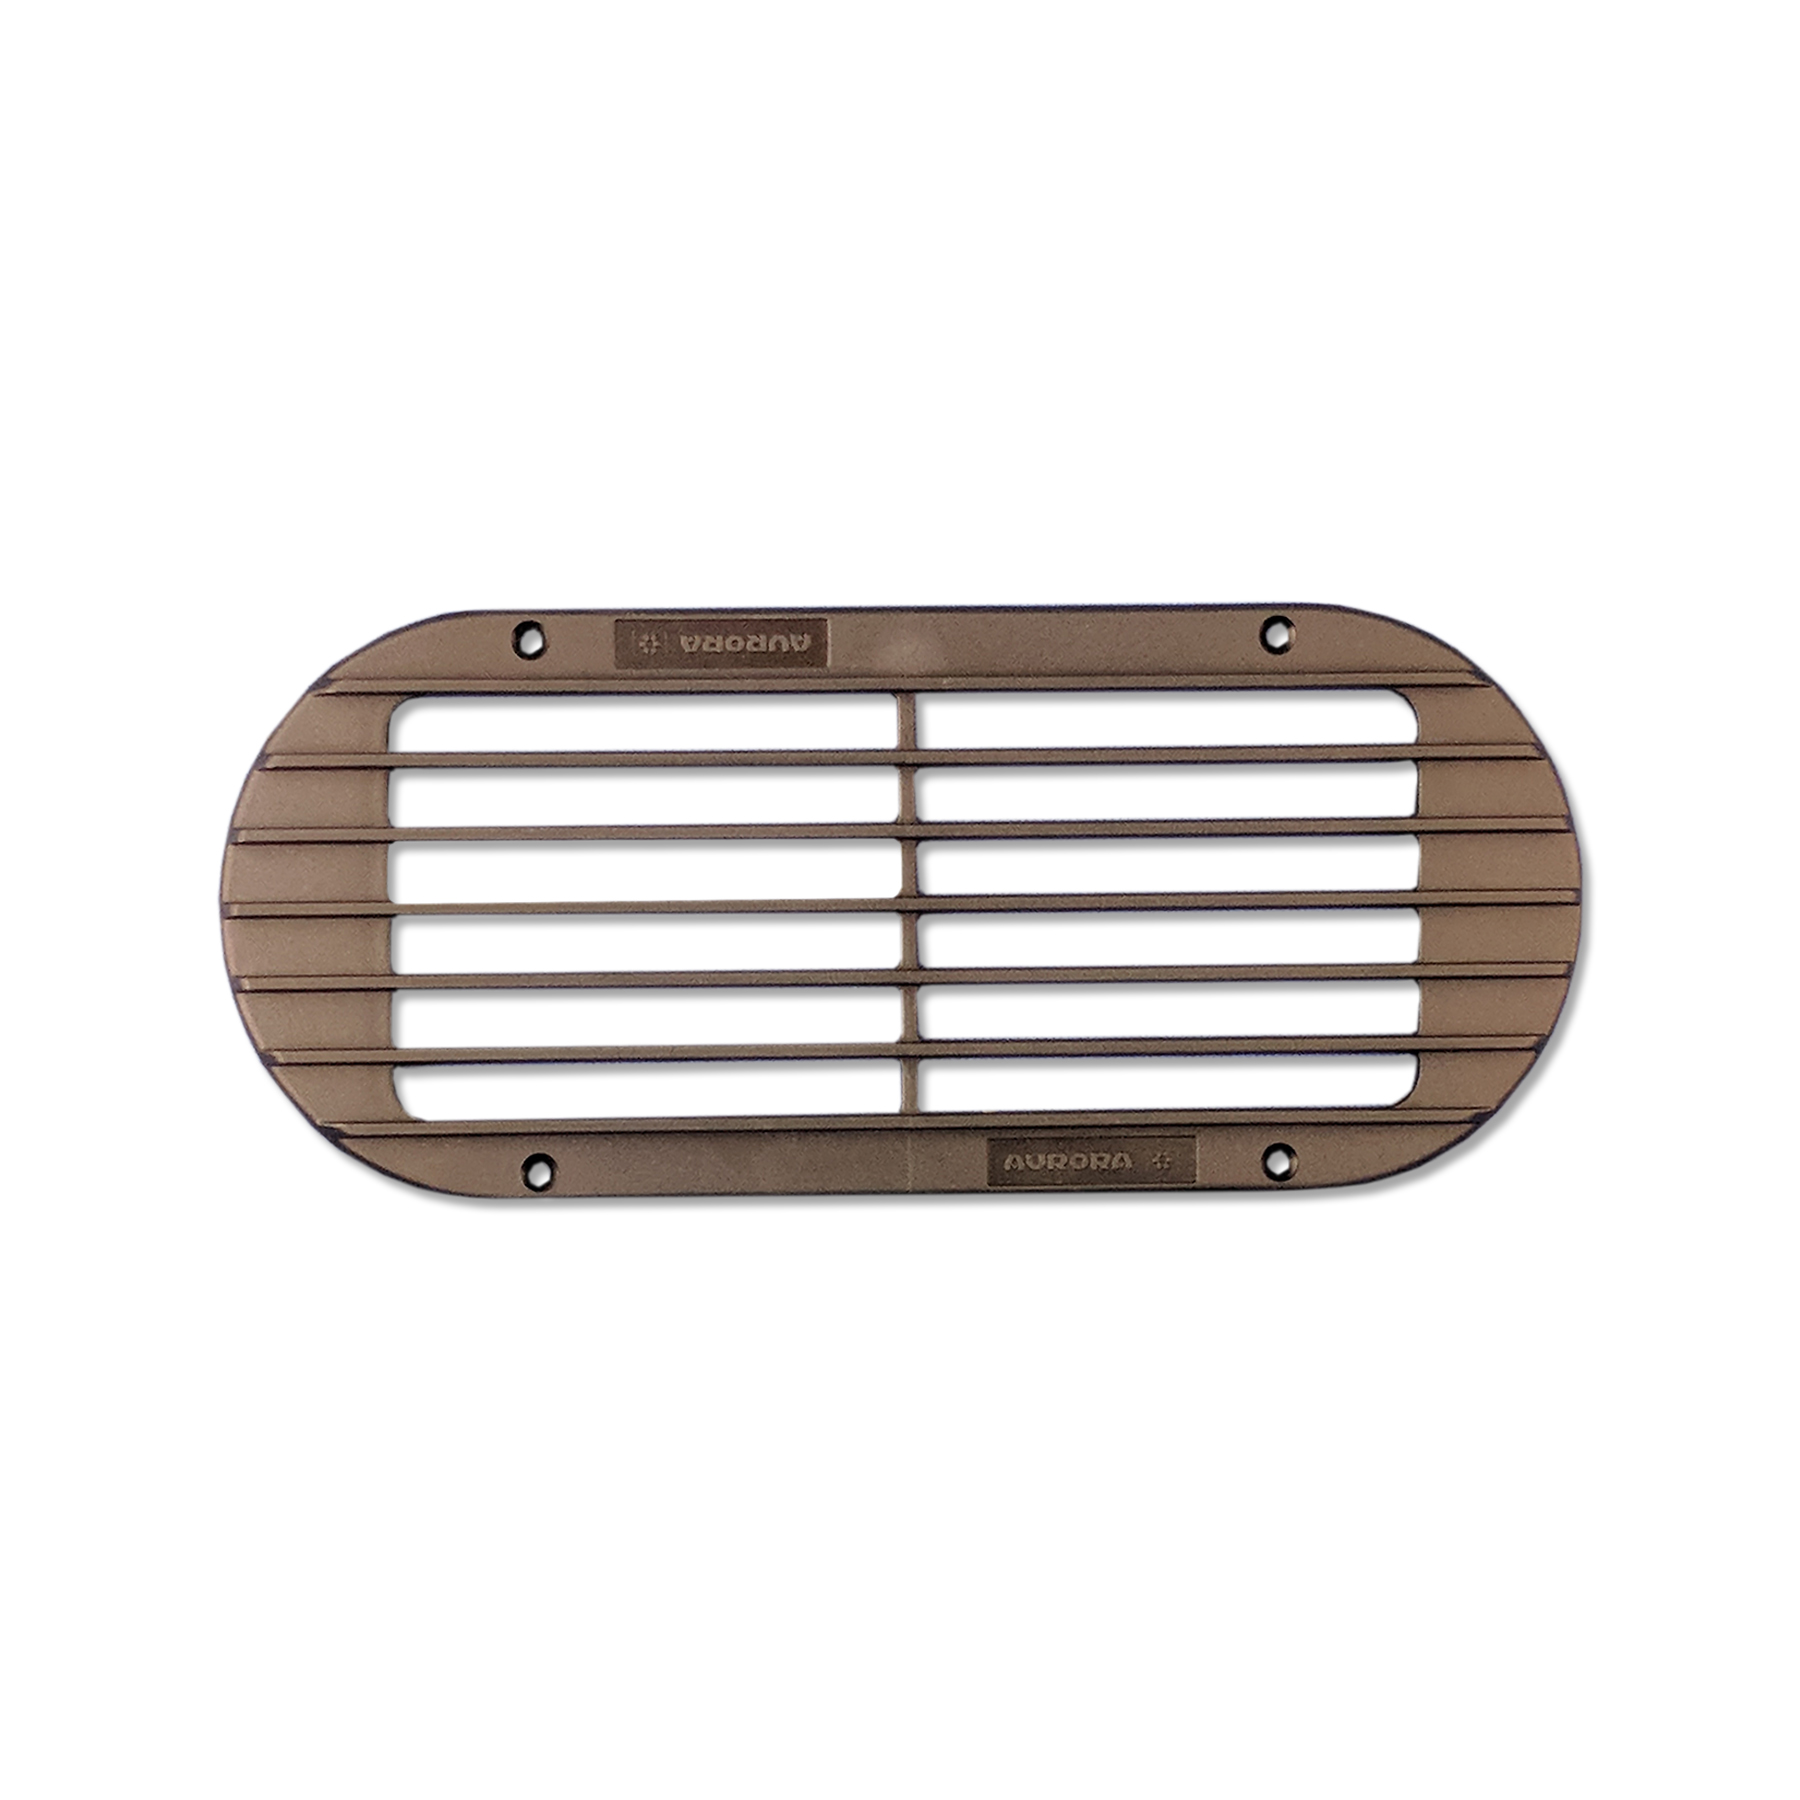 Small Black Grille, 3-1/2 X 8-1/2